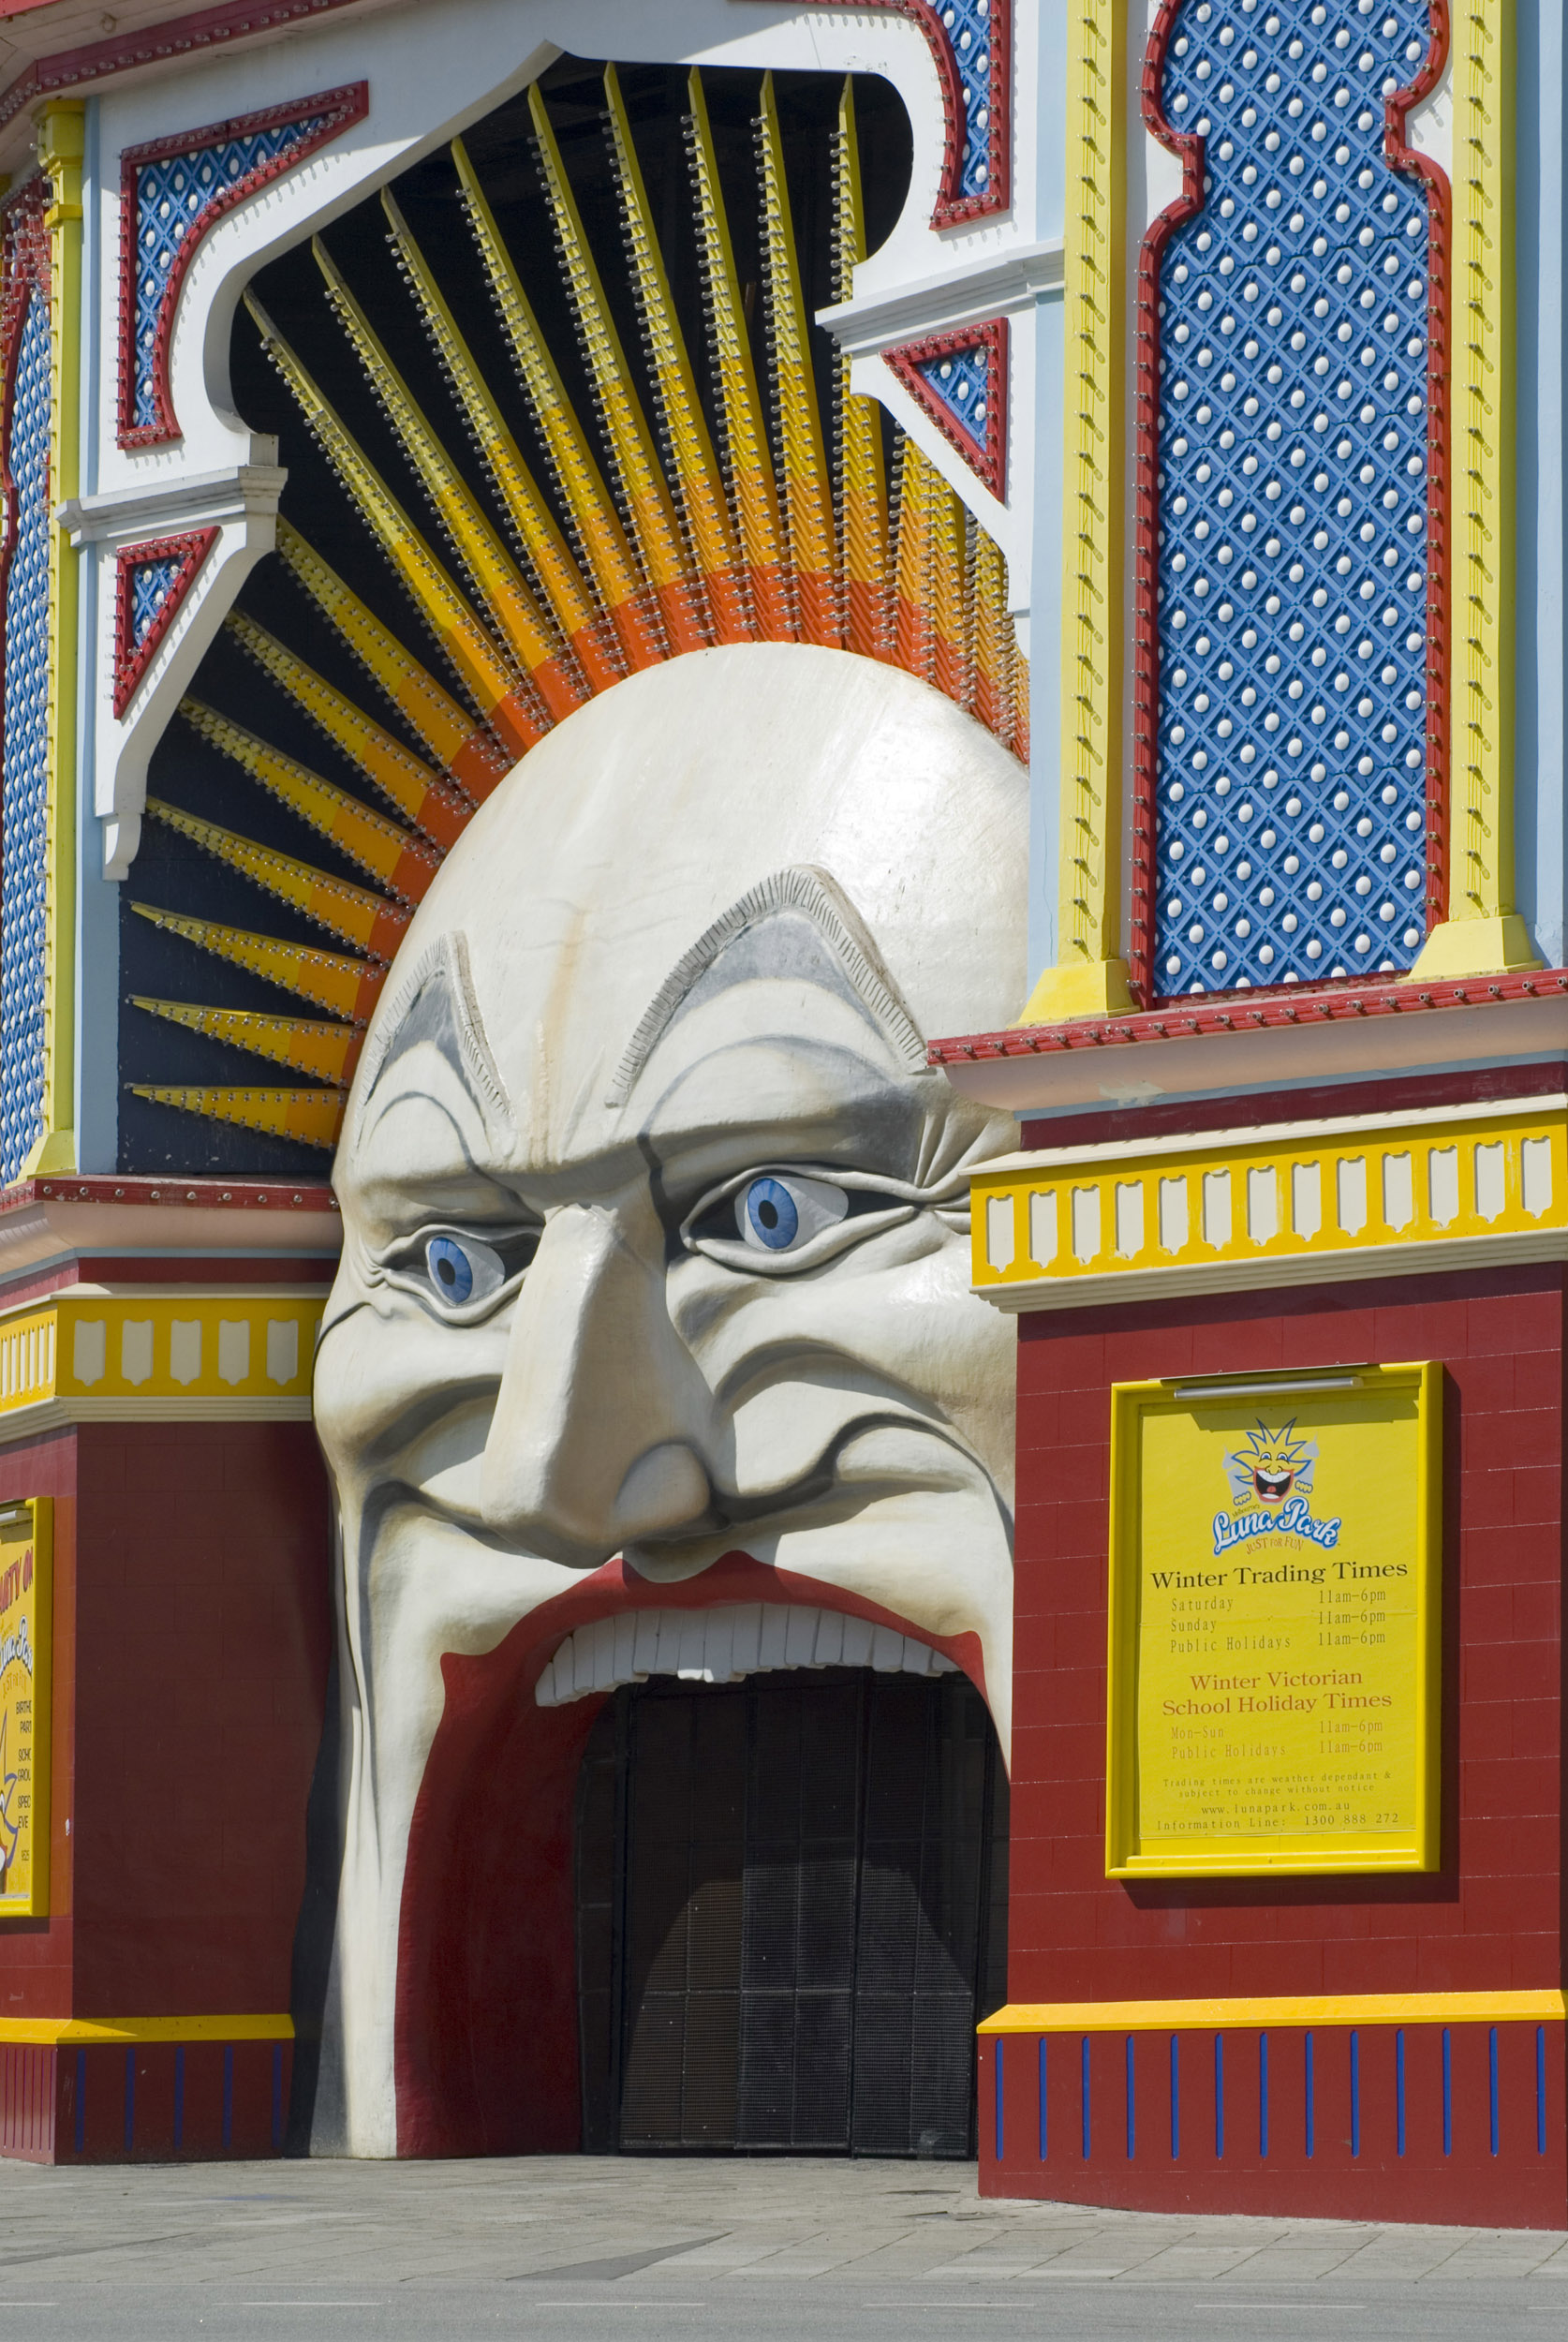 The colourful clown mouth entrance to Luna Park with no people in Melbourne, Australia.